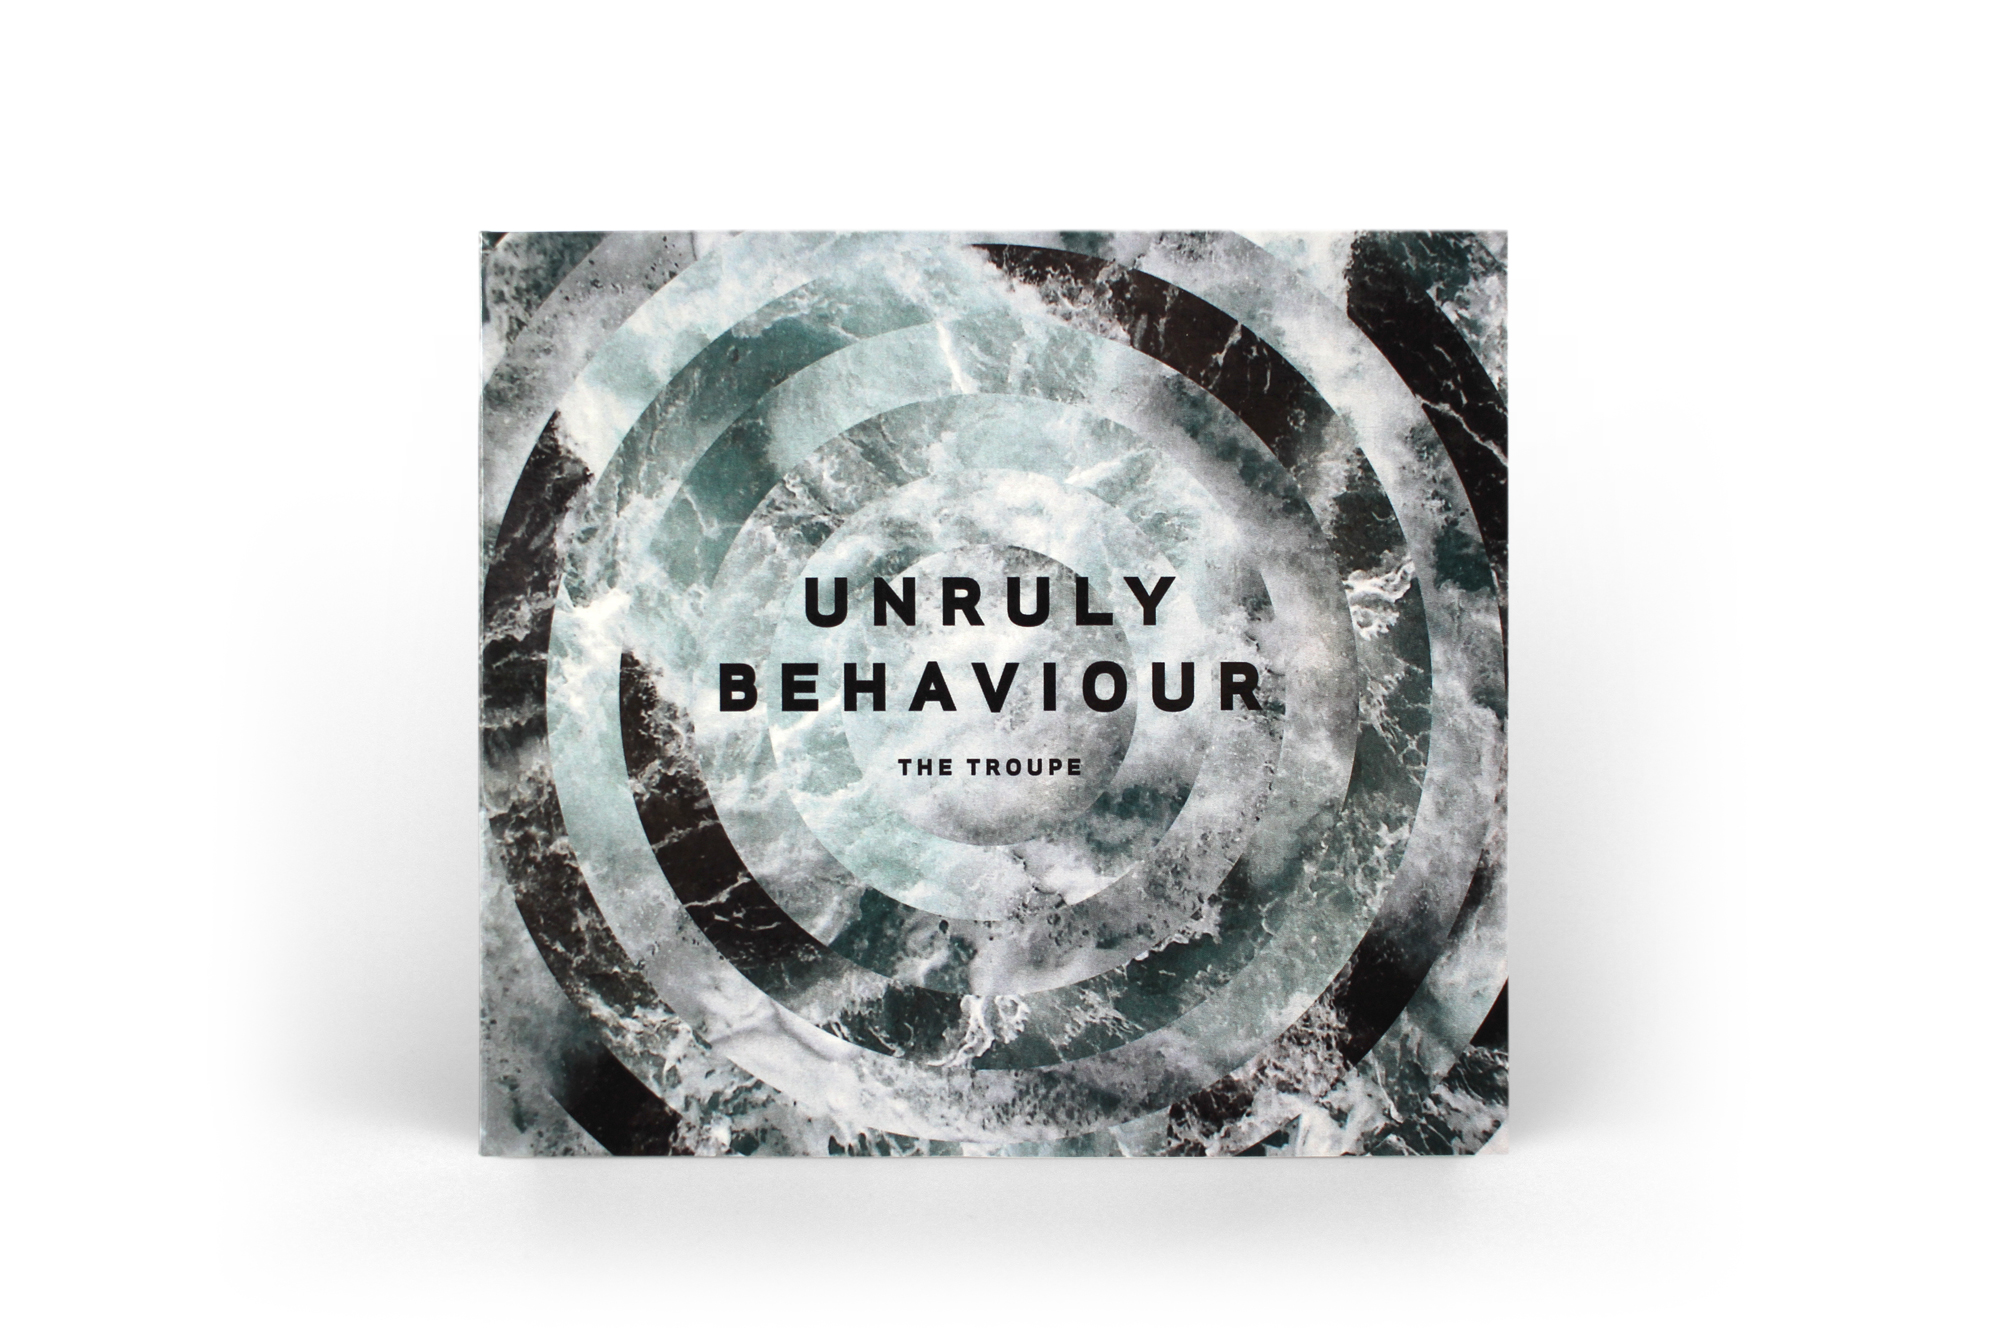 Cover image: The Troupe – Unruly Behaviour